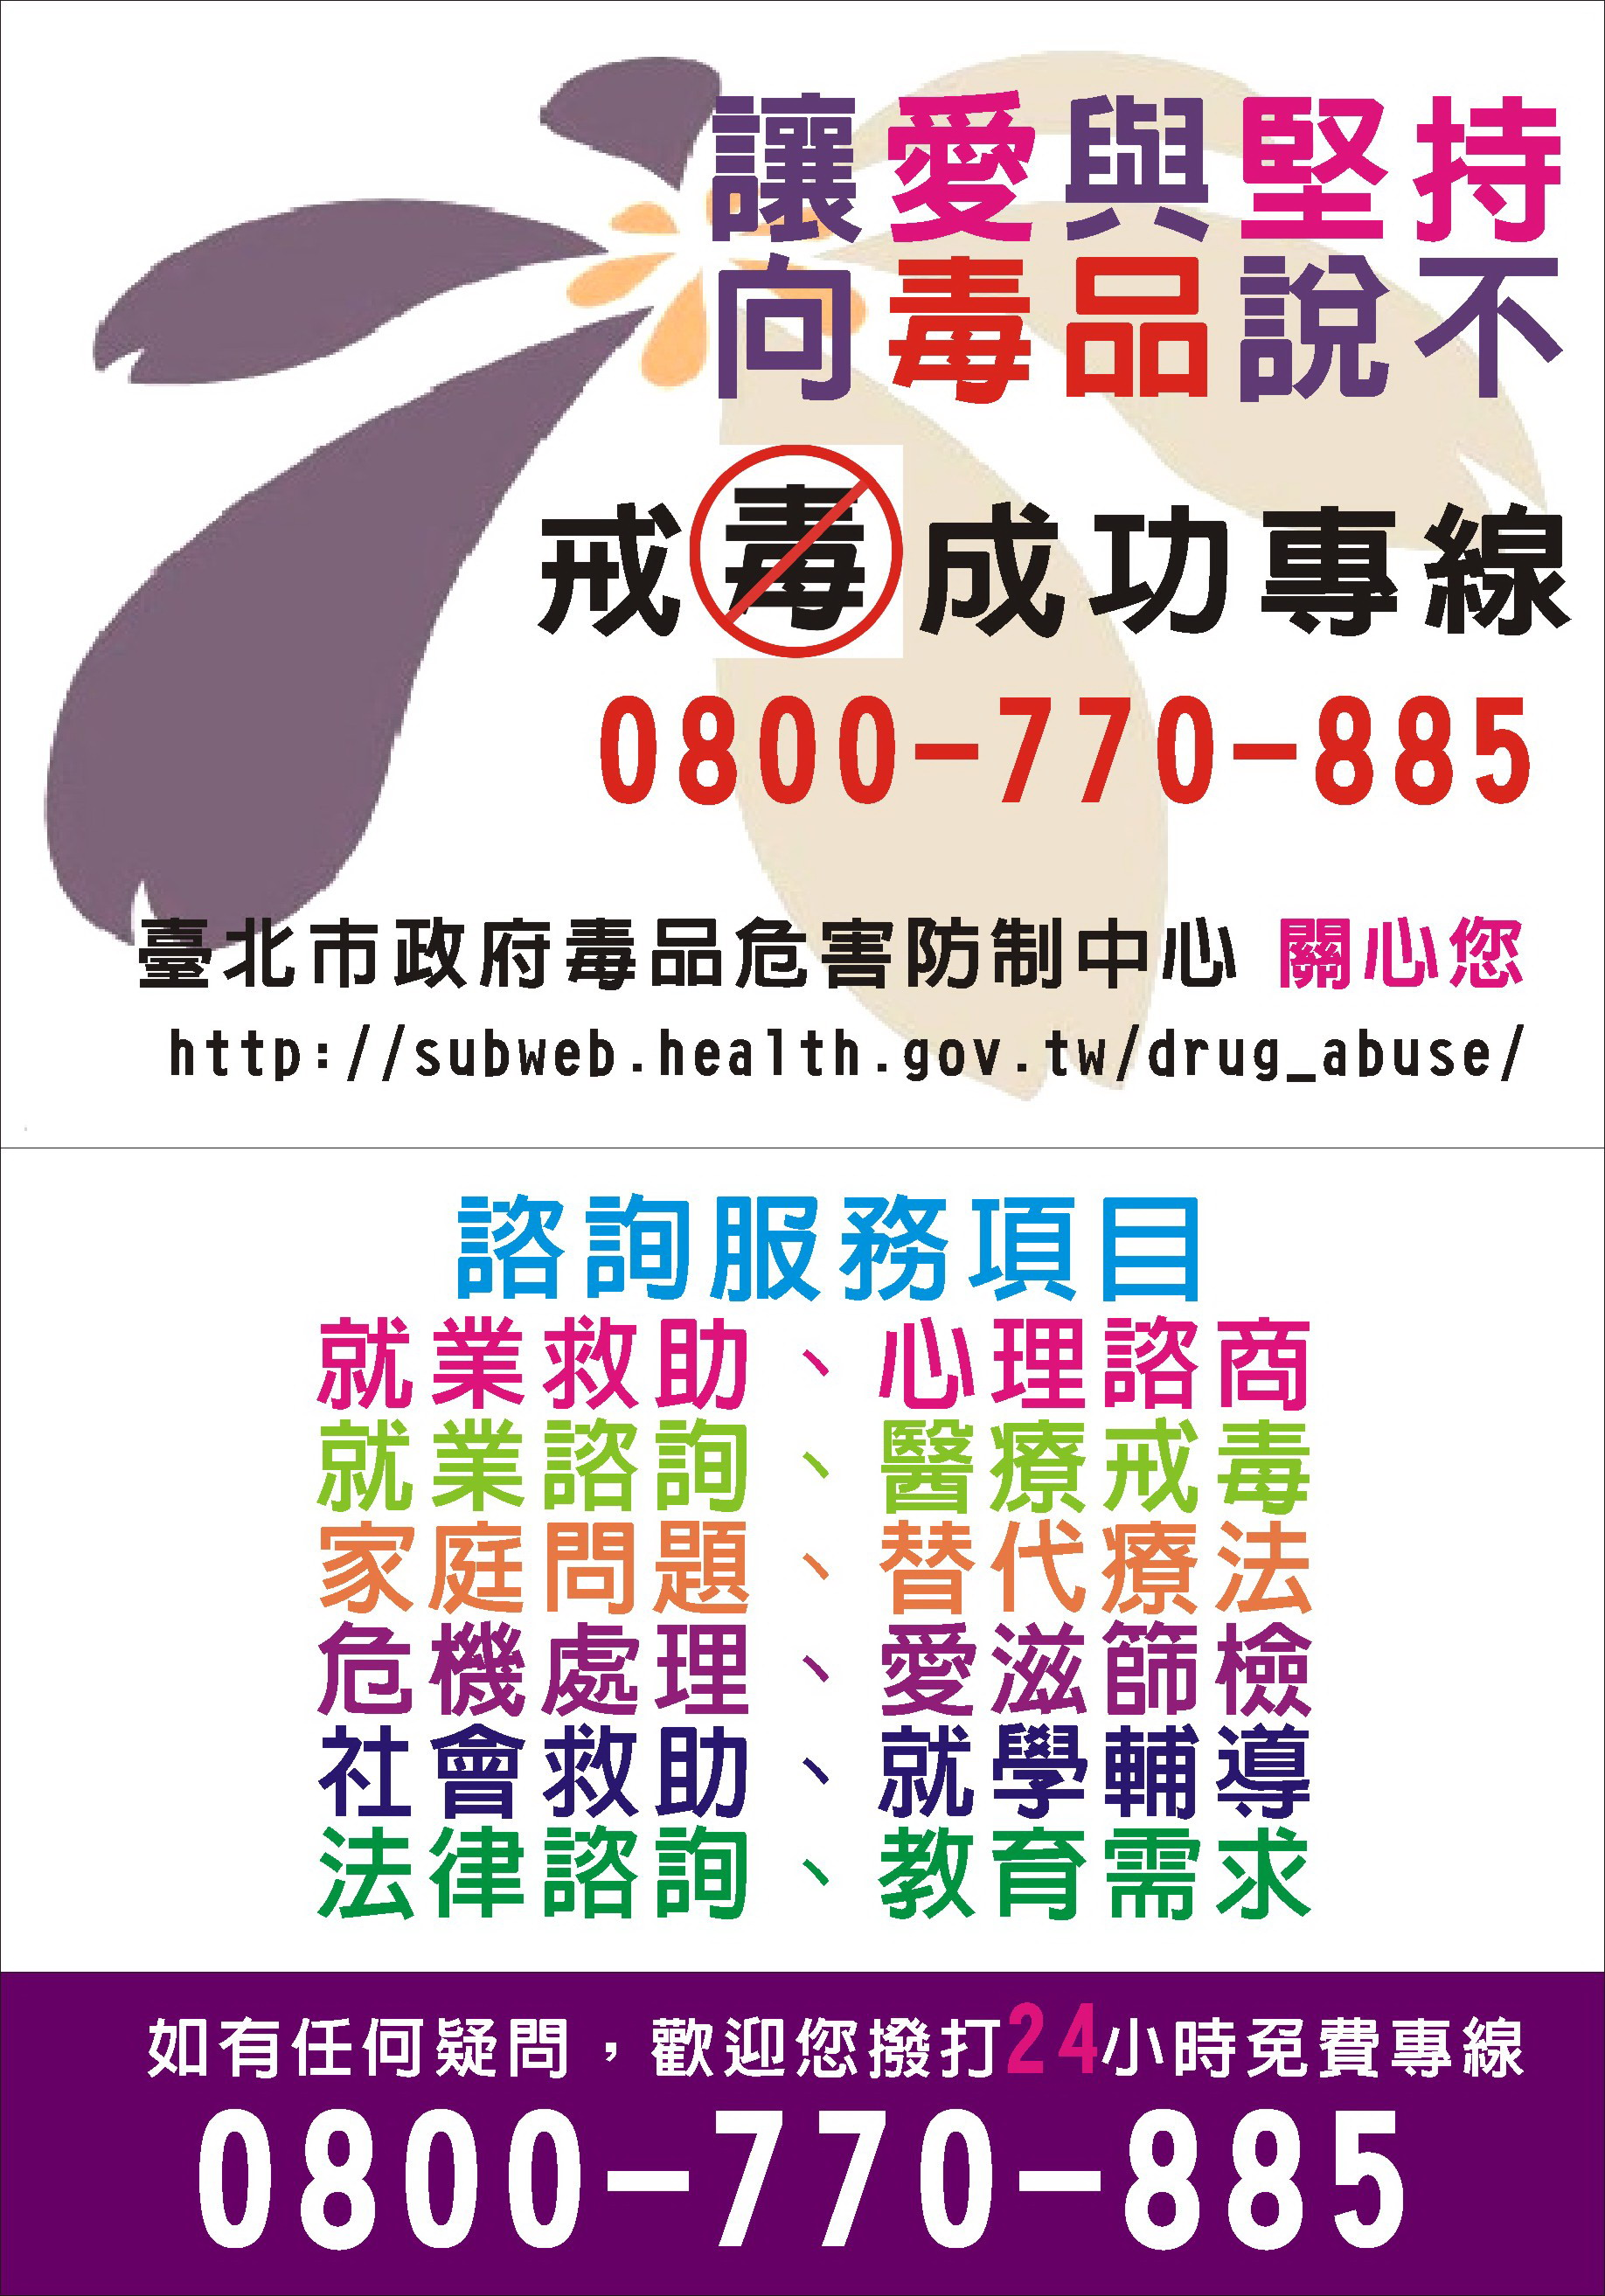 taipei city drug abuse prevention center hotline service 0800-770-885